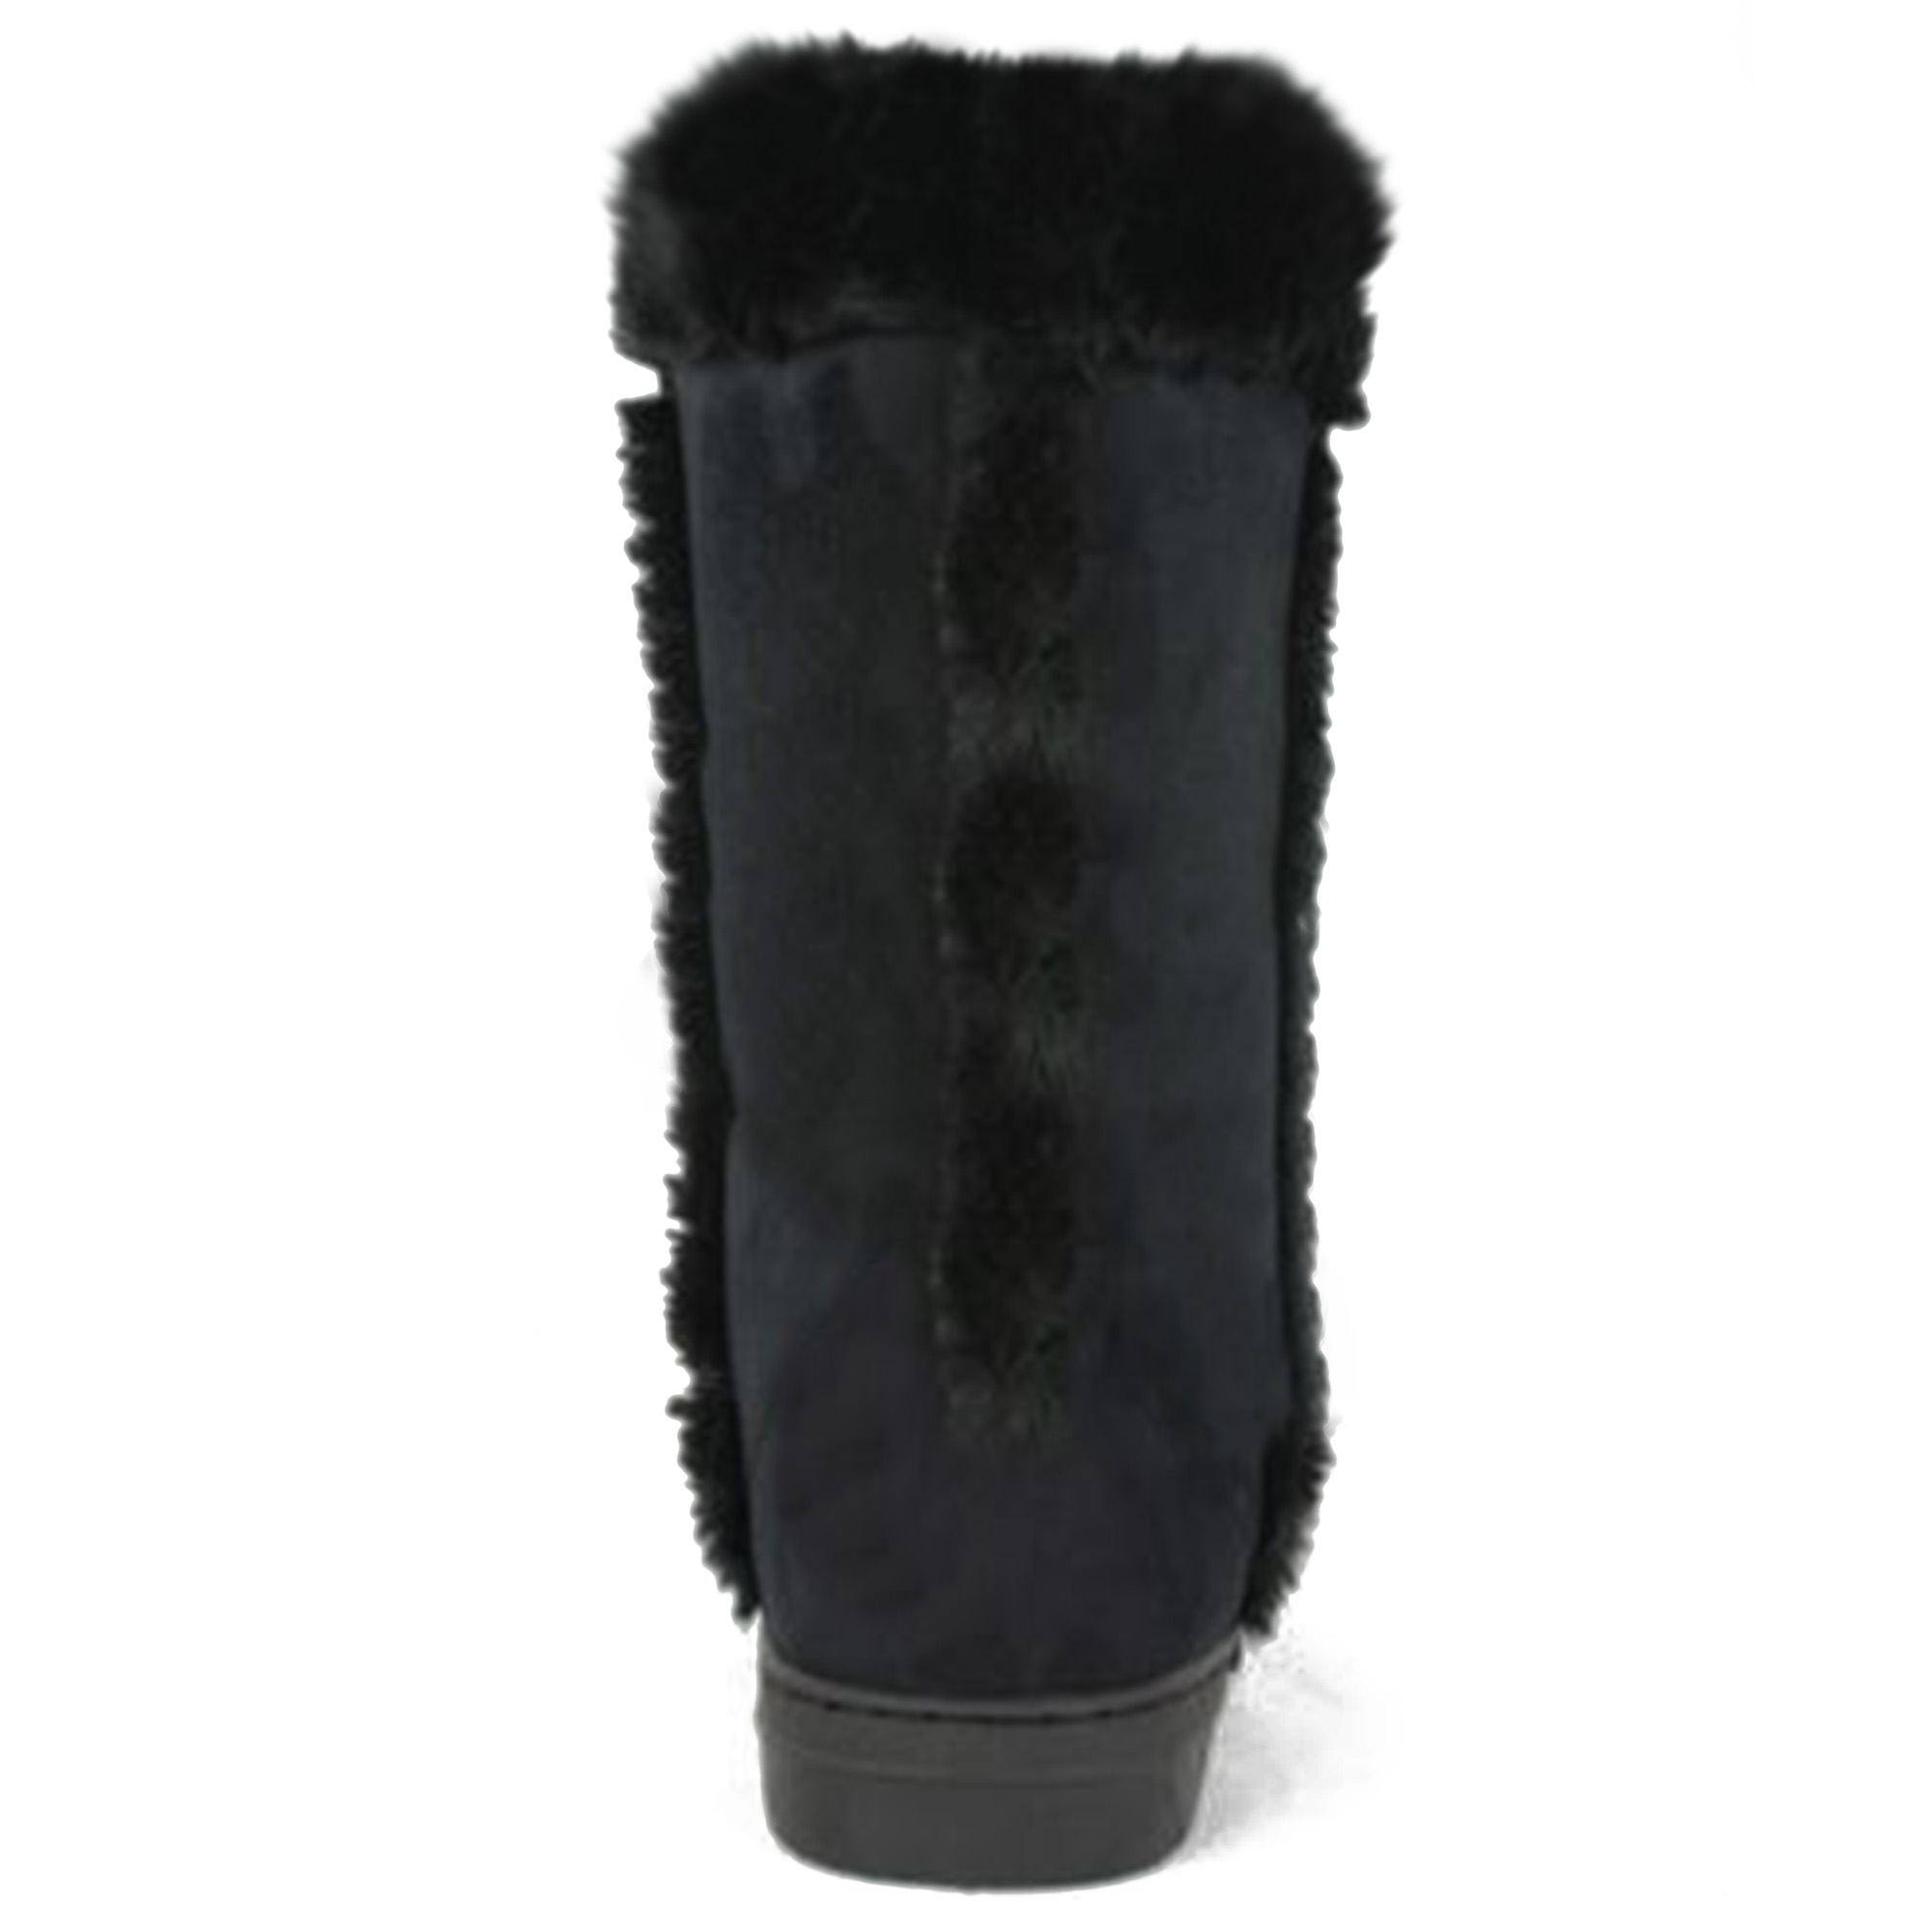 e863d16e7a1 Womens Ugg Insole Replacements - cheap watches mgc-gas.com